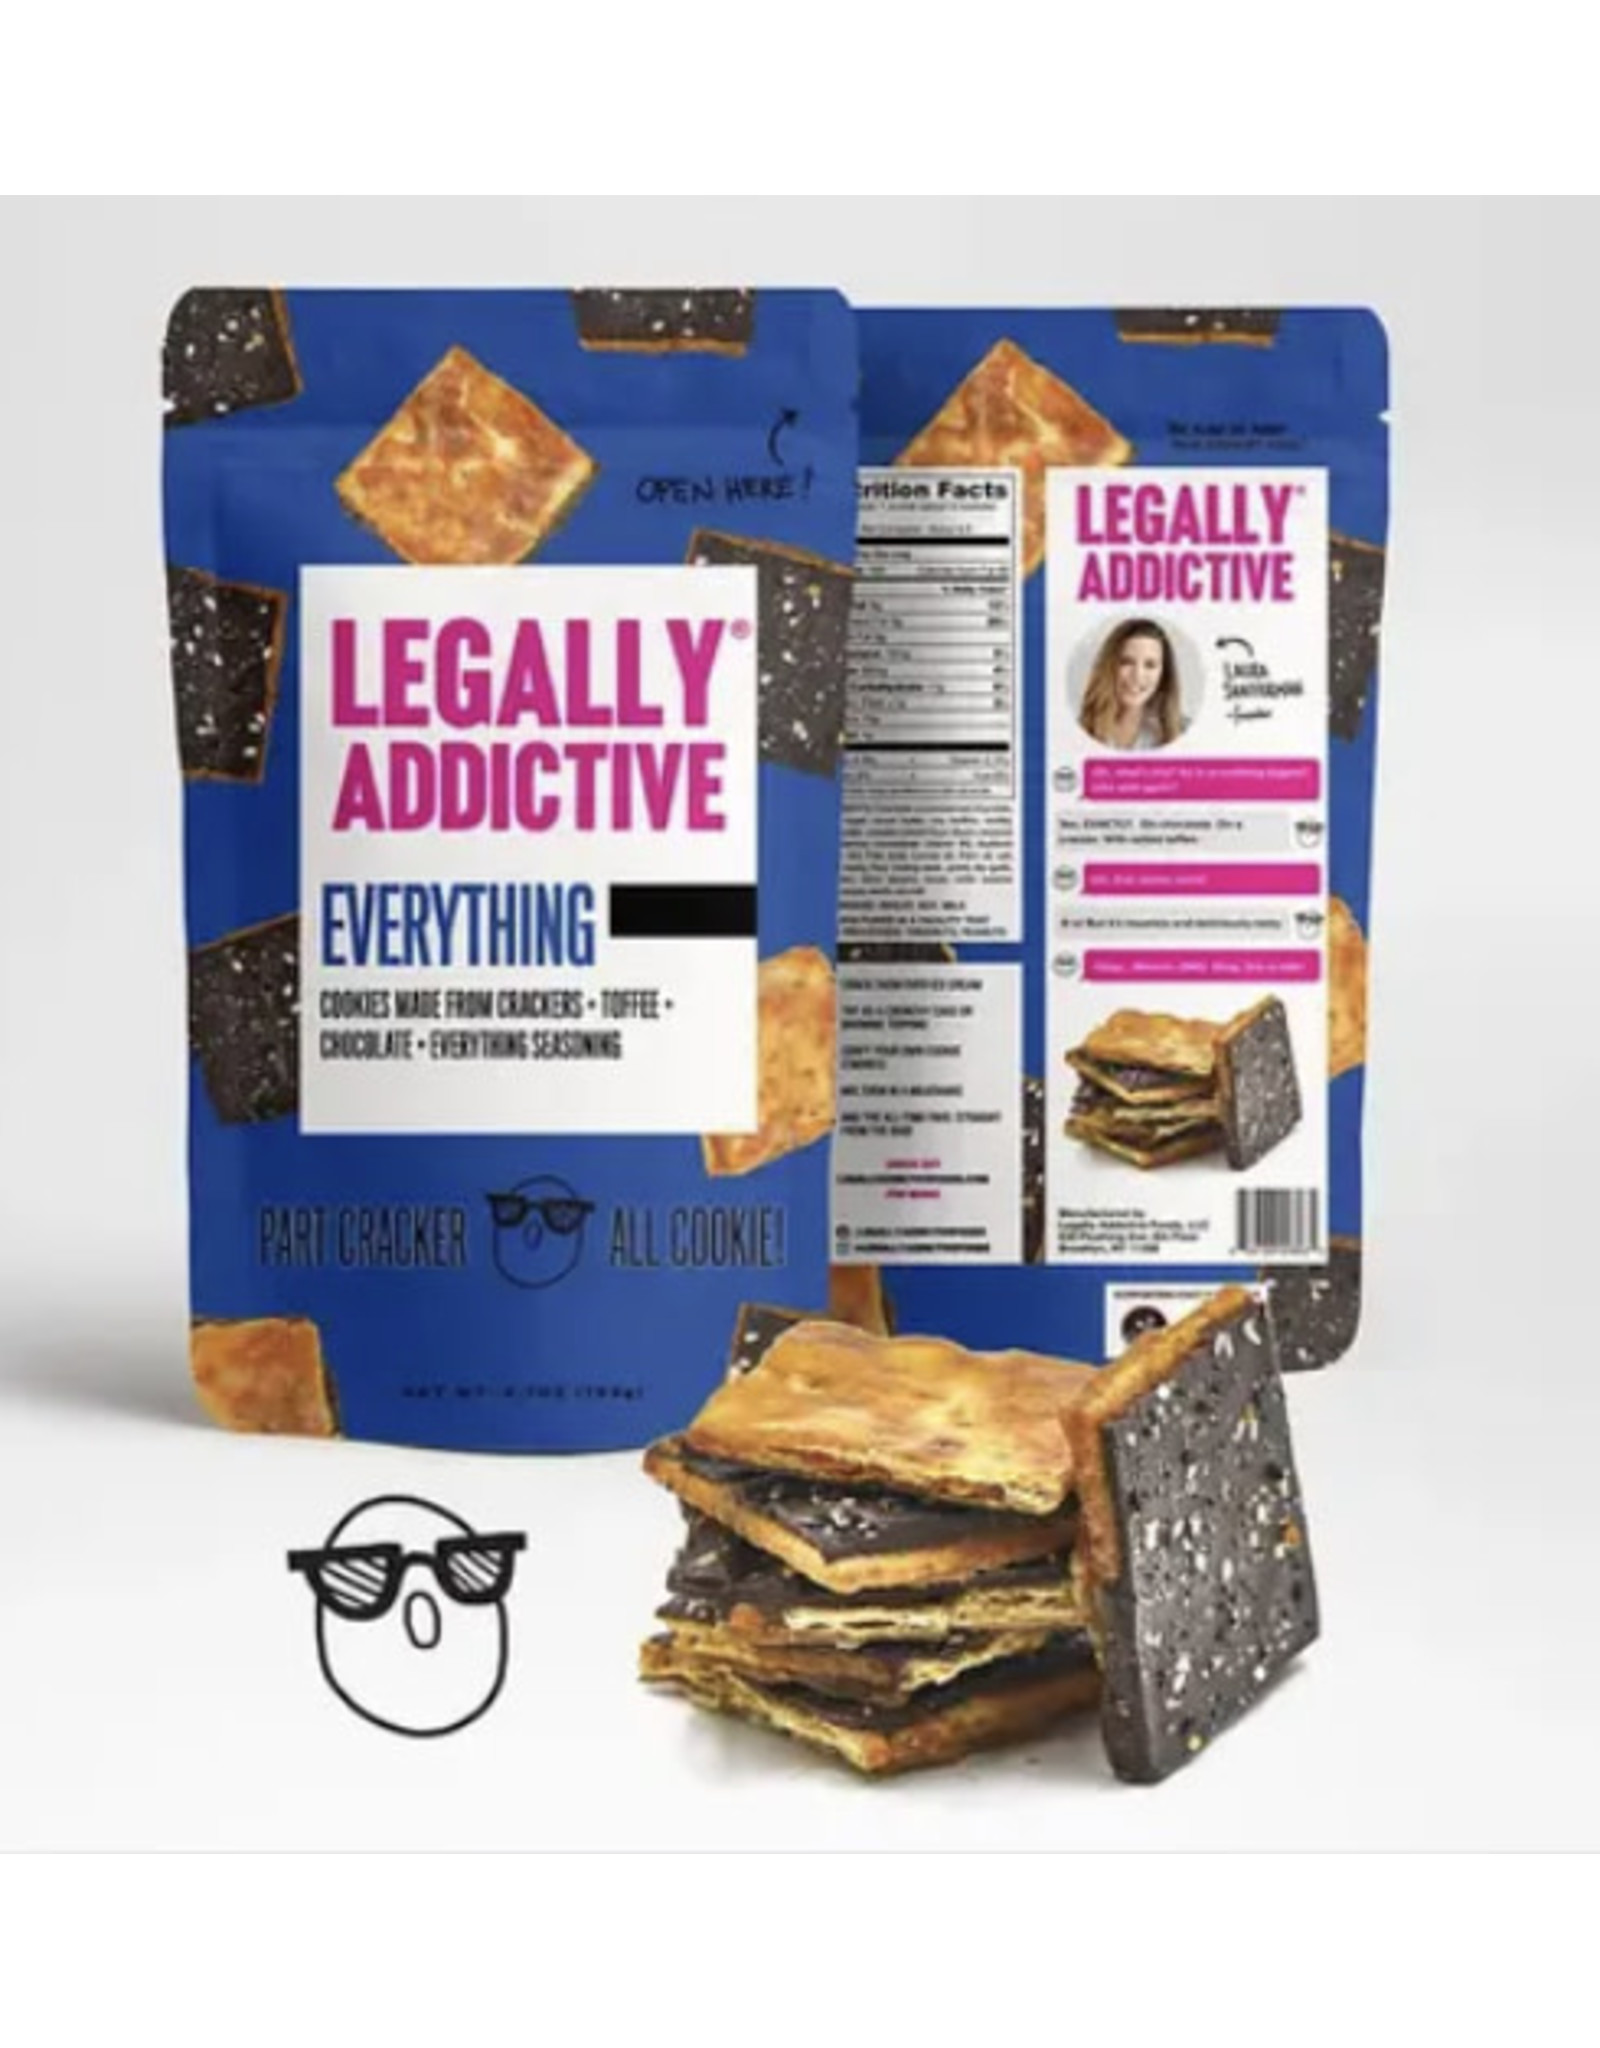 Legally Addictive Everything, 4.7 oz